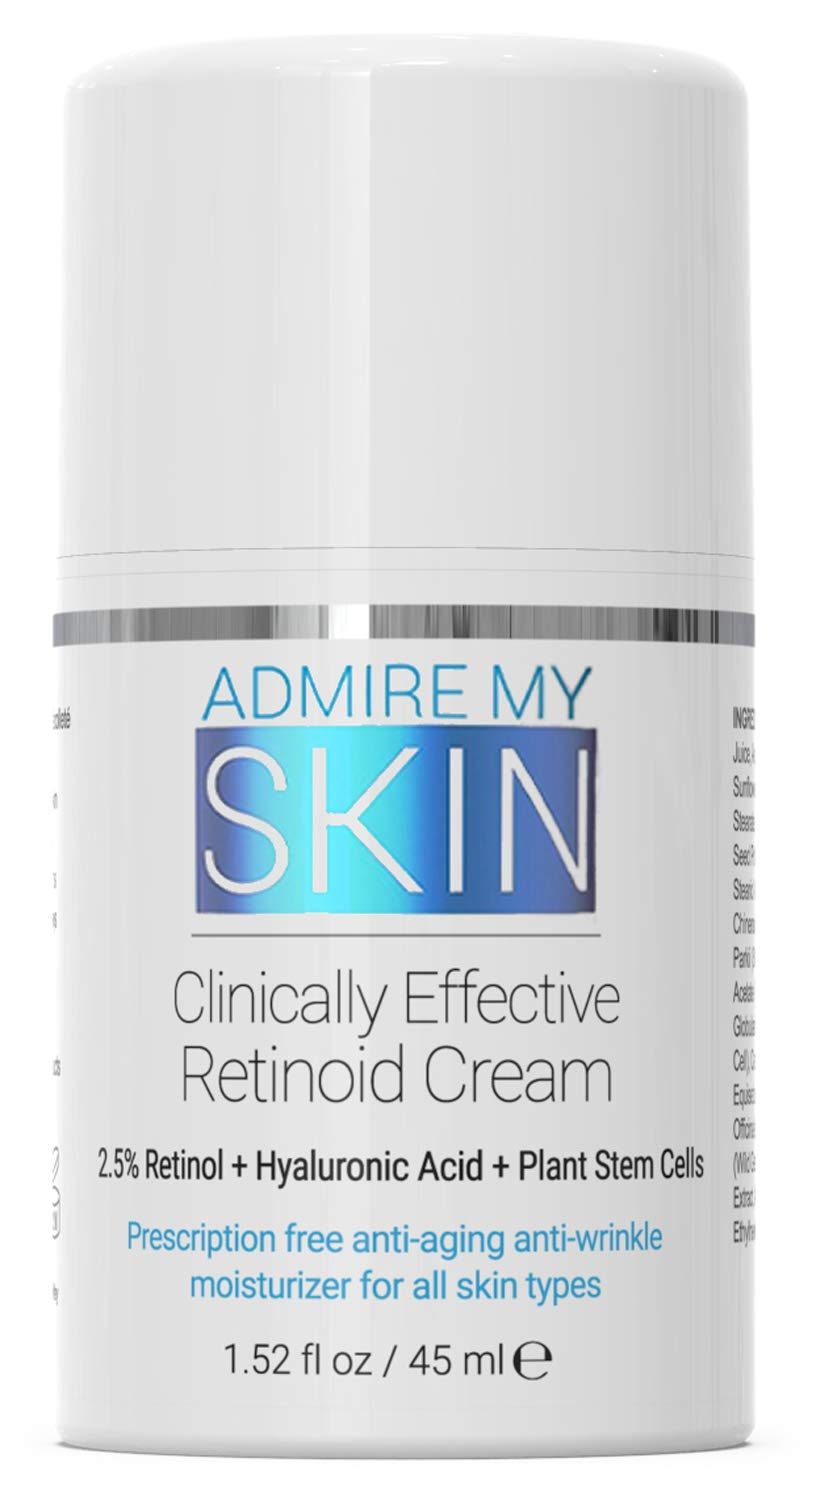 Potent Retinoid Cream Provides Clinical Retinol Results Without A Prescription - The Most Effective Retinoic Acid Moisturizer For Acne & Wrinkles Will Provide You With That Youthful Glow by Admire My Skin